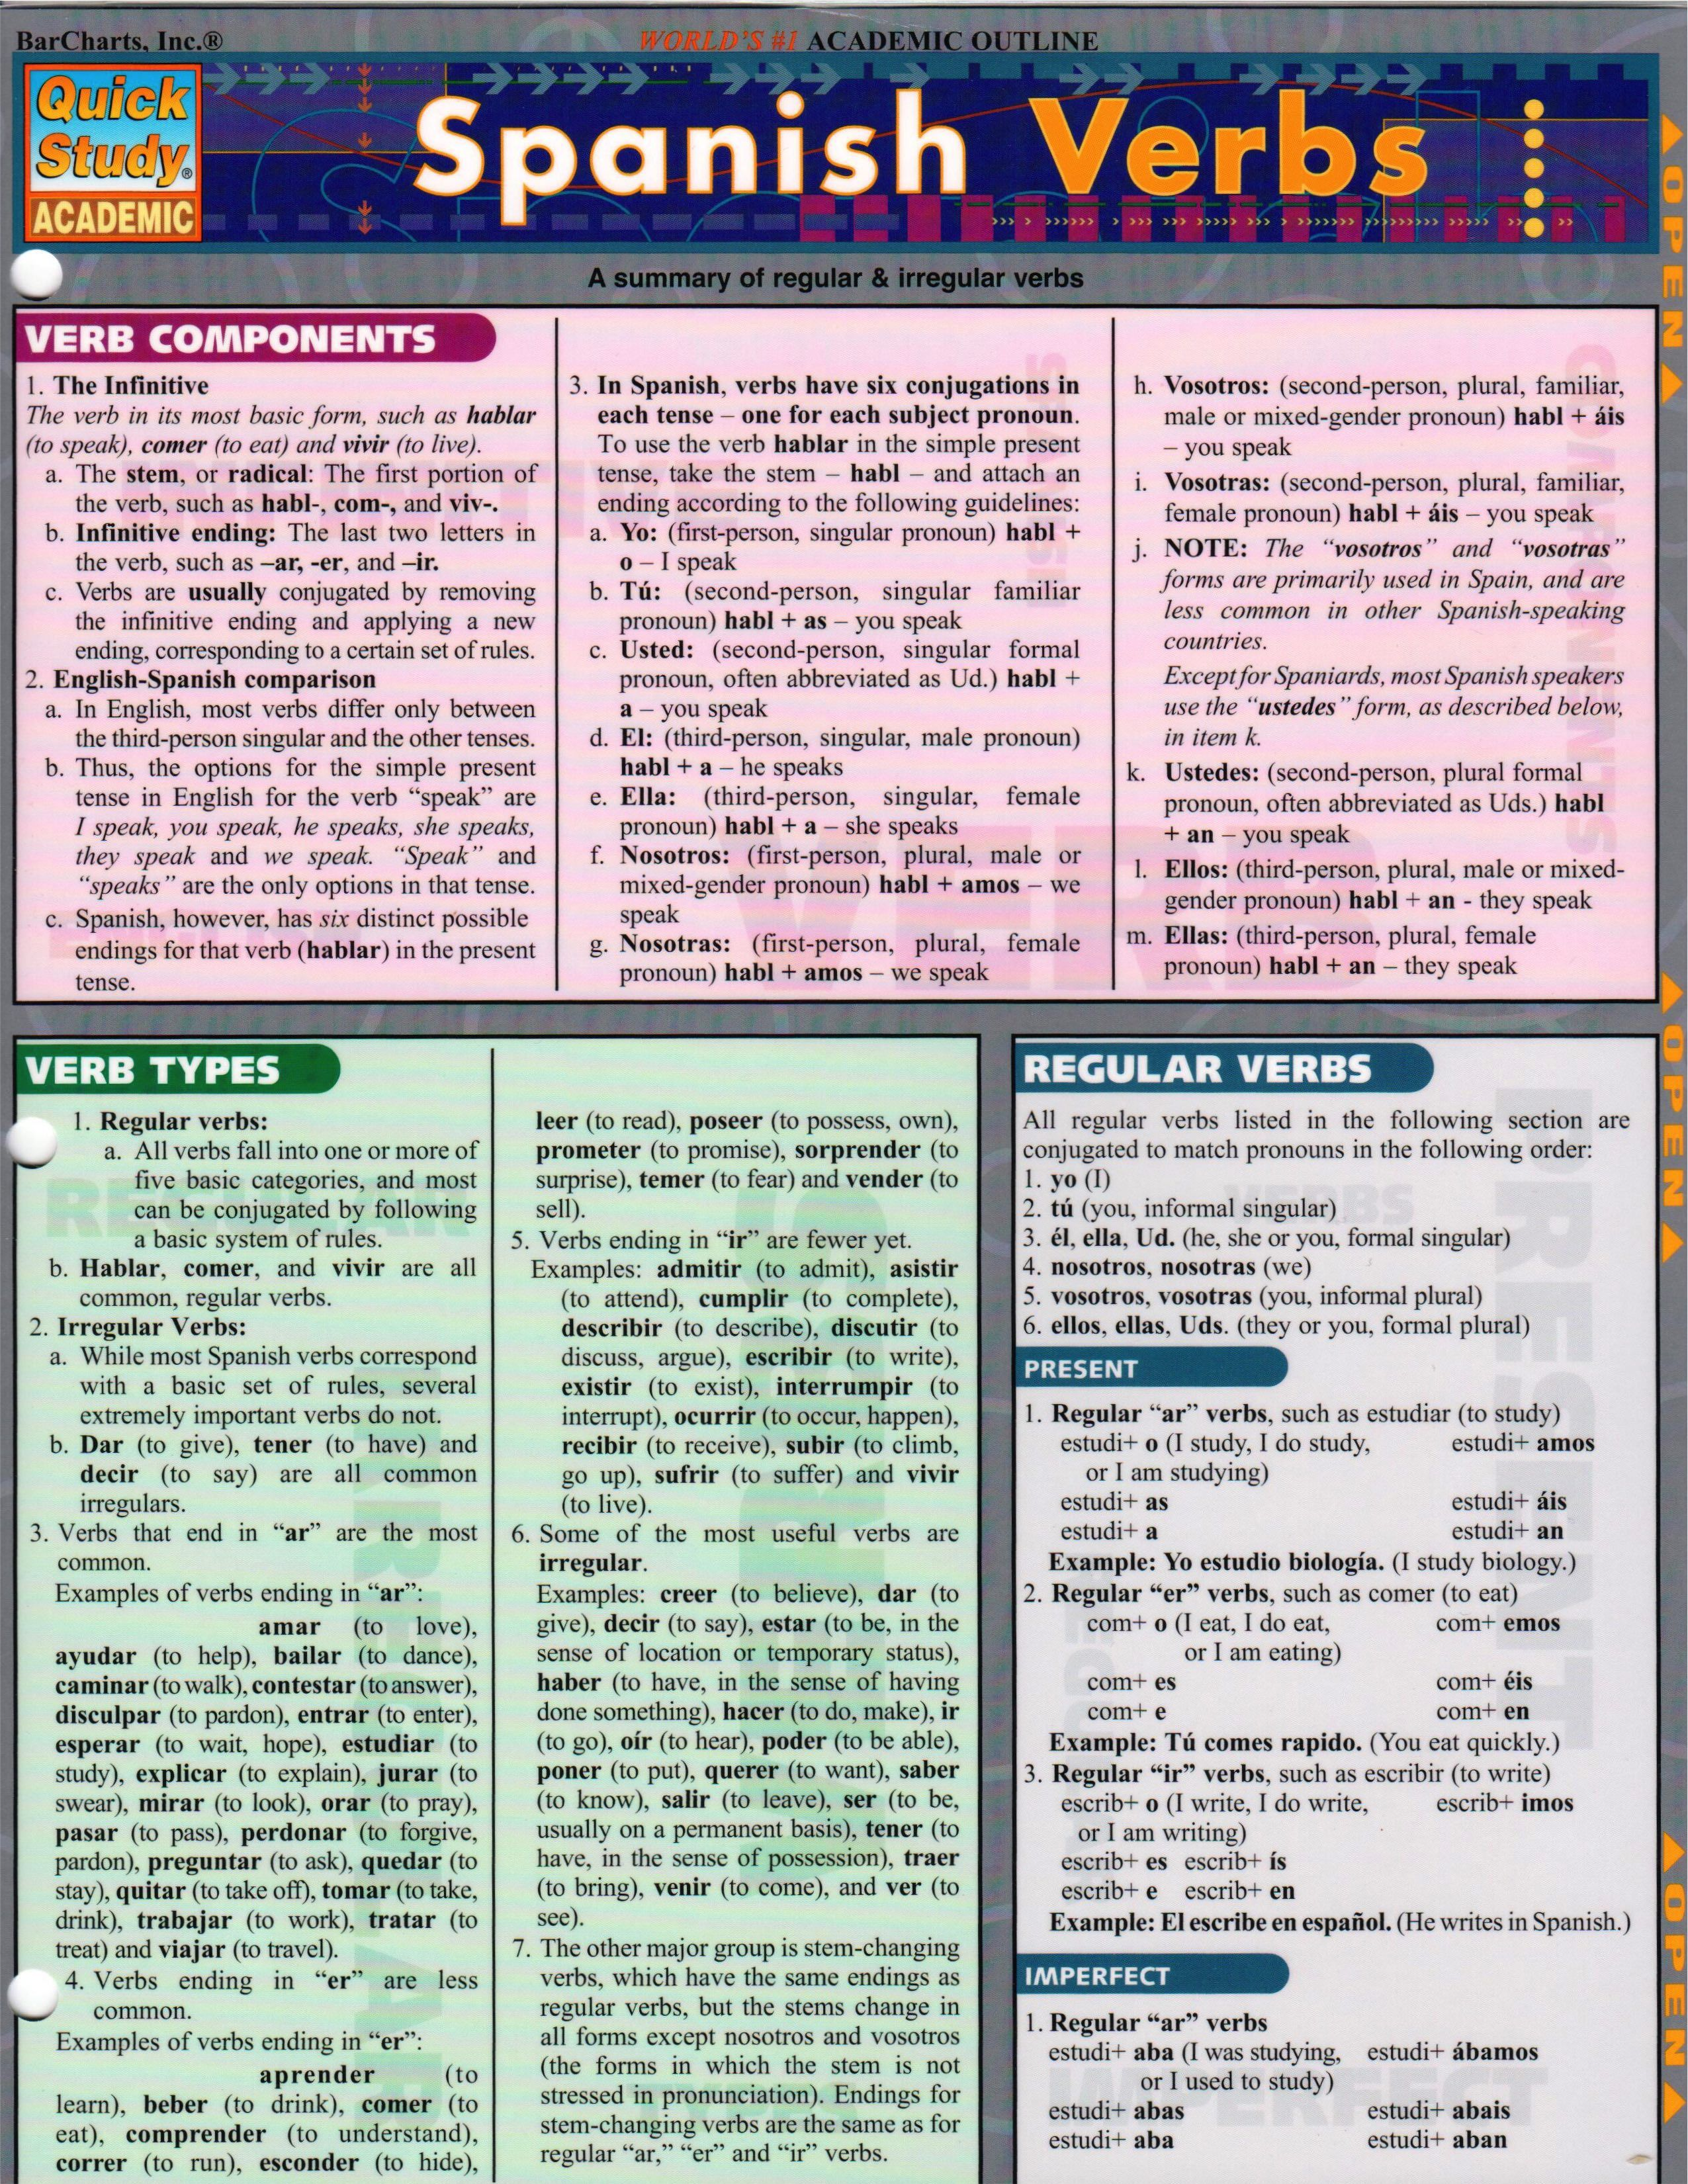 BarChart's Spanish Verbs Quick Study Guide is an outline of Spanish verb  basics; covering regular and irregular verb conjugation and listing useful  verbs